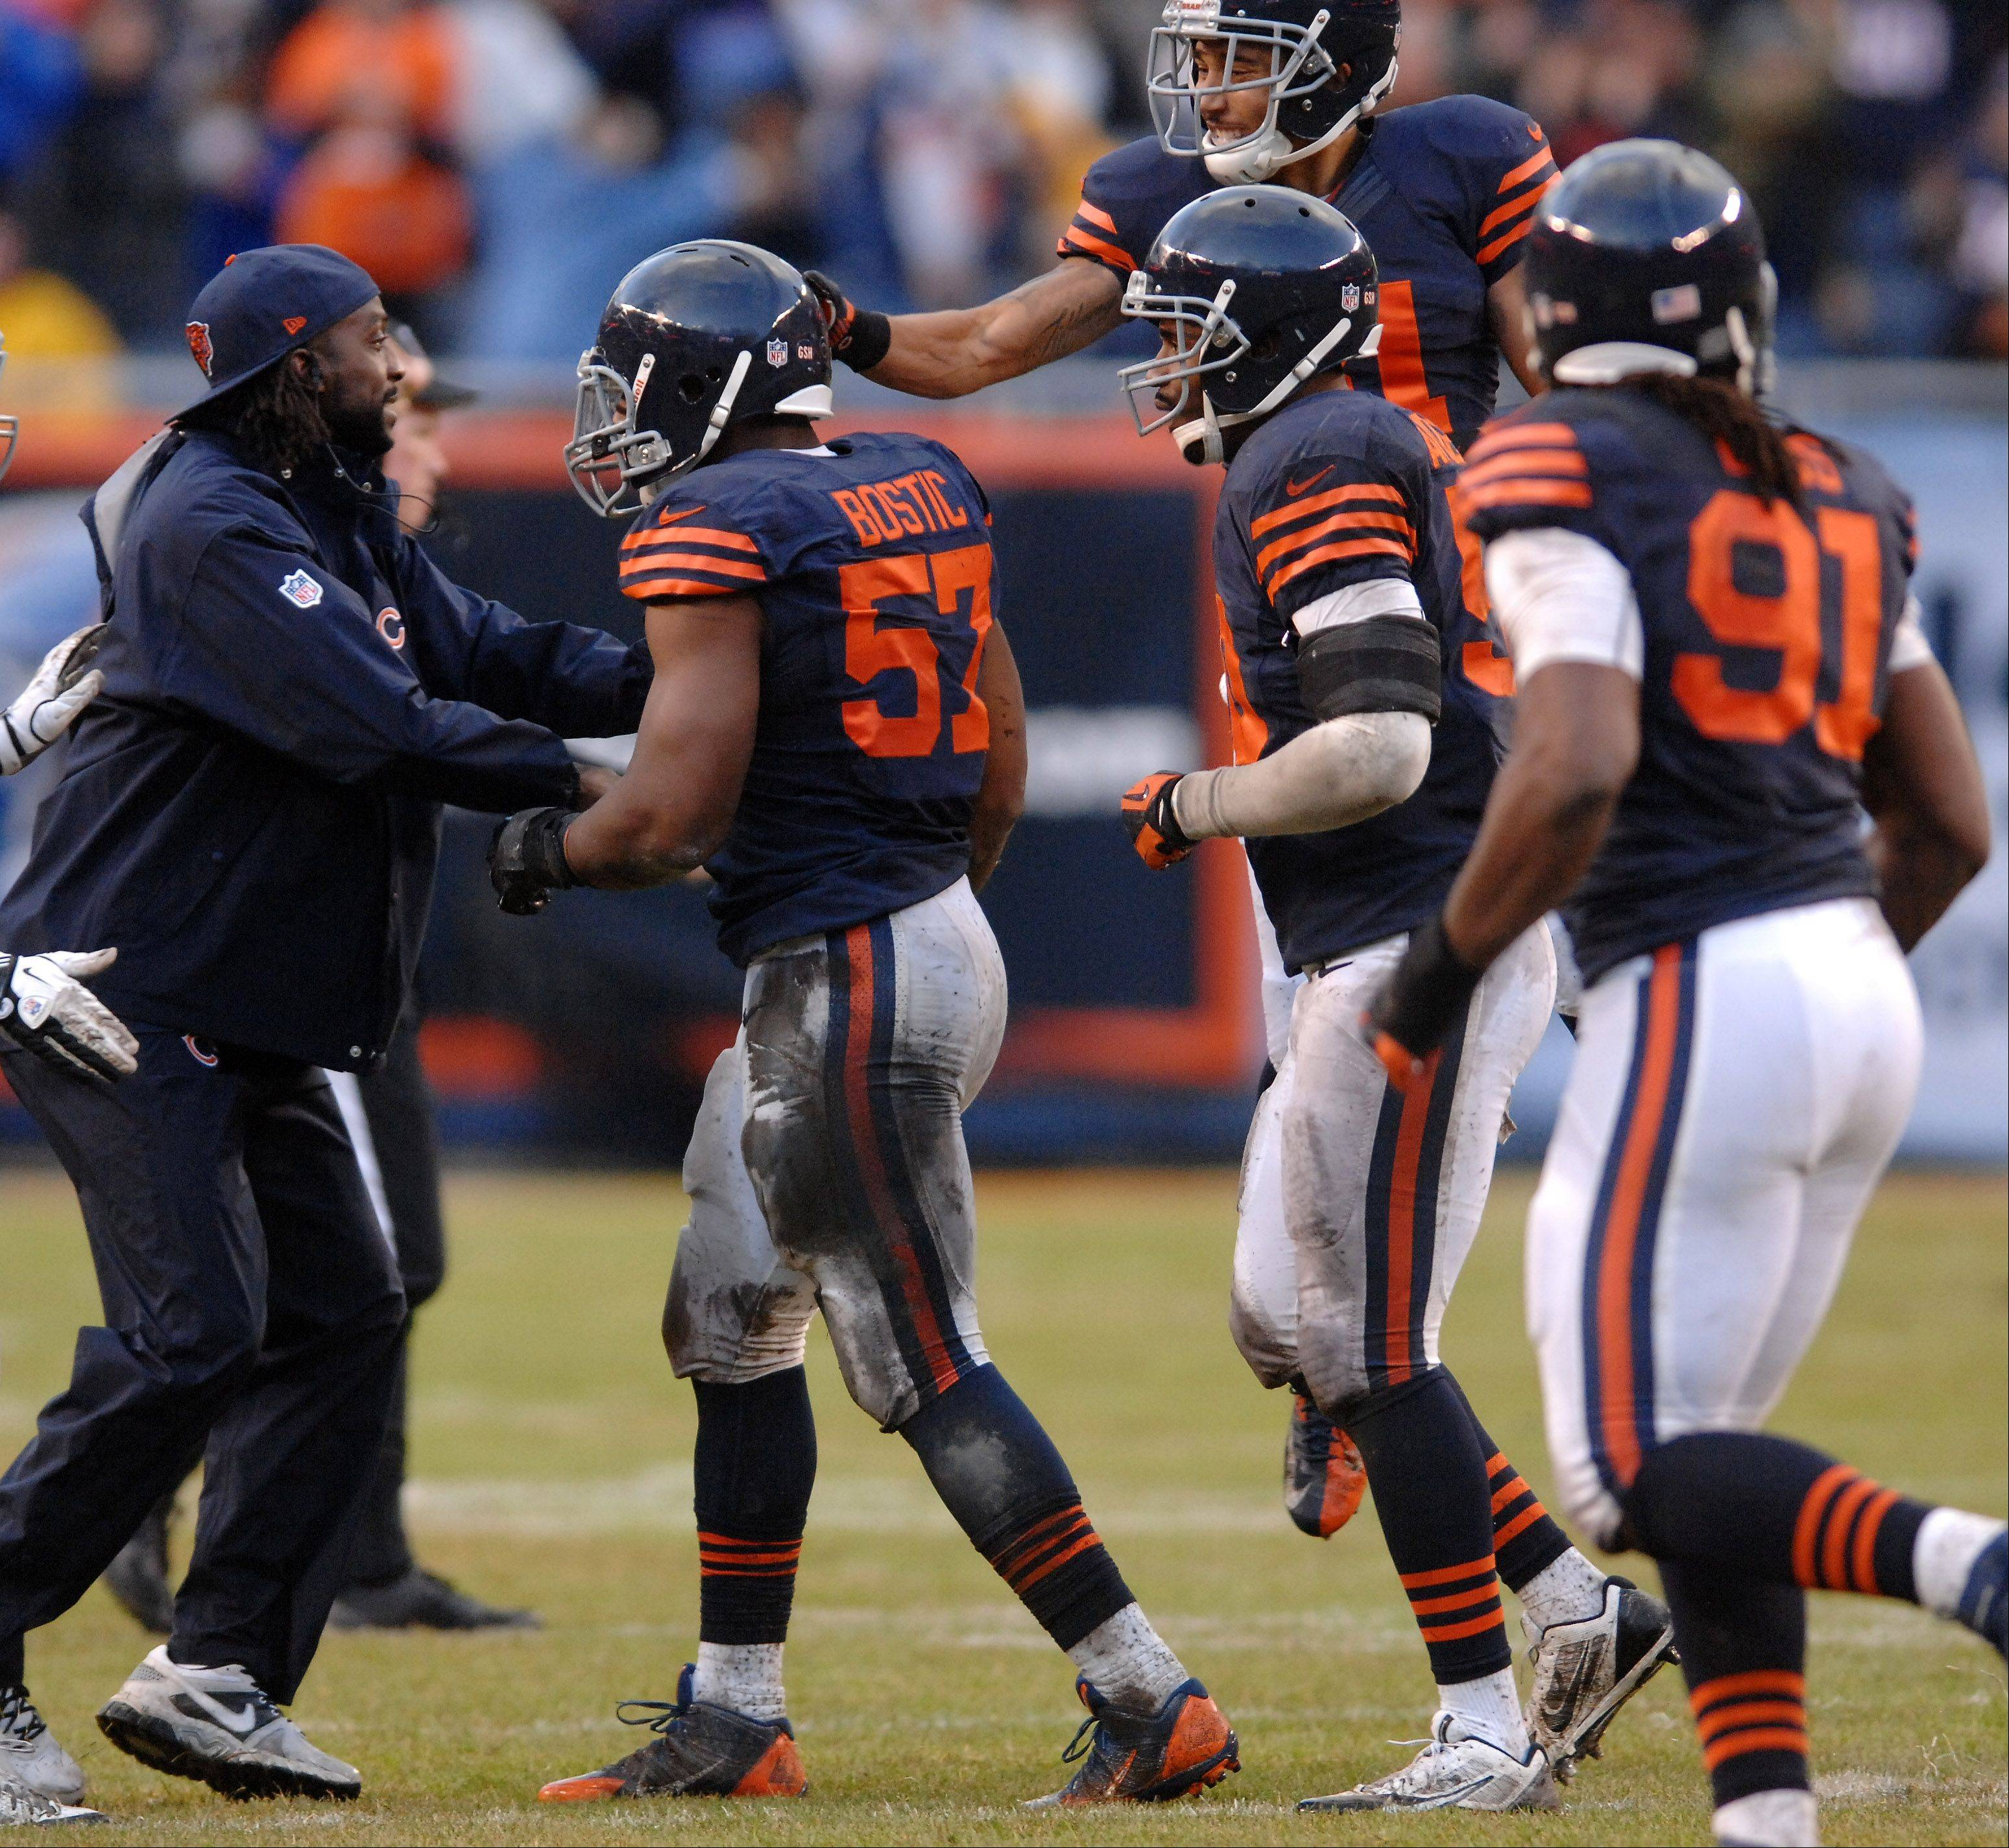 Bears' defense starting to get it done